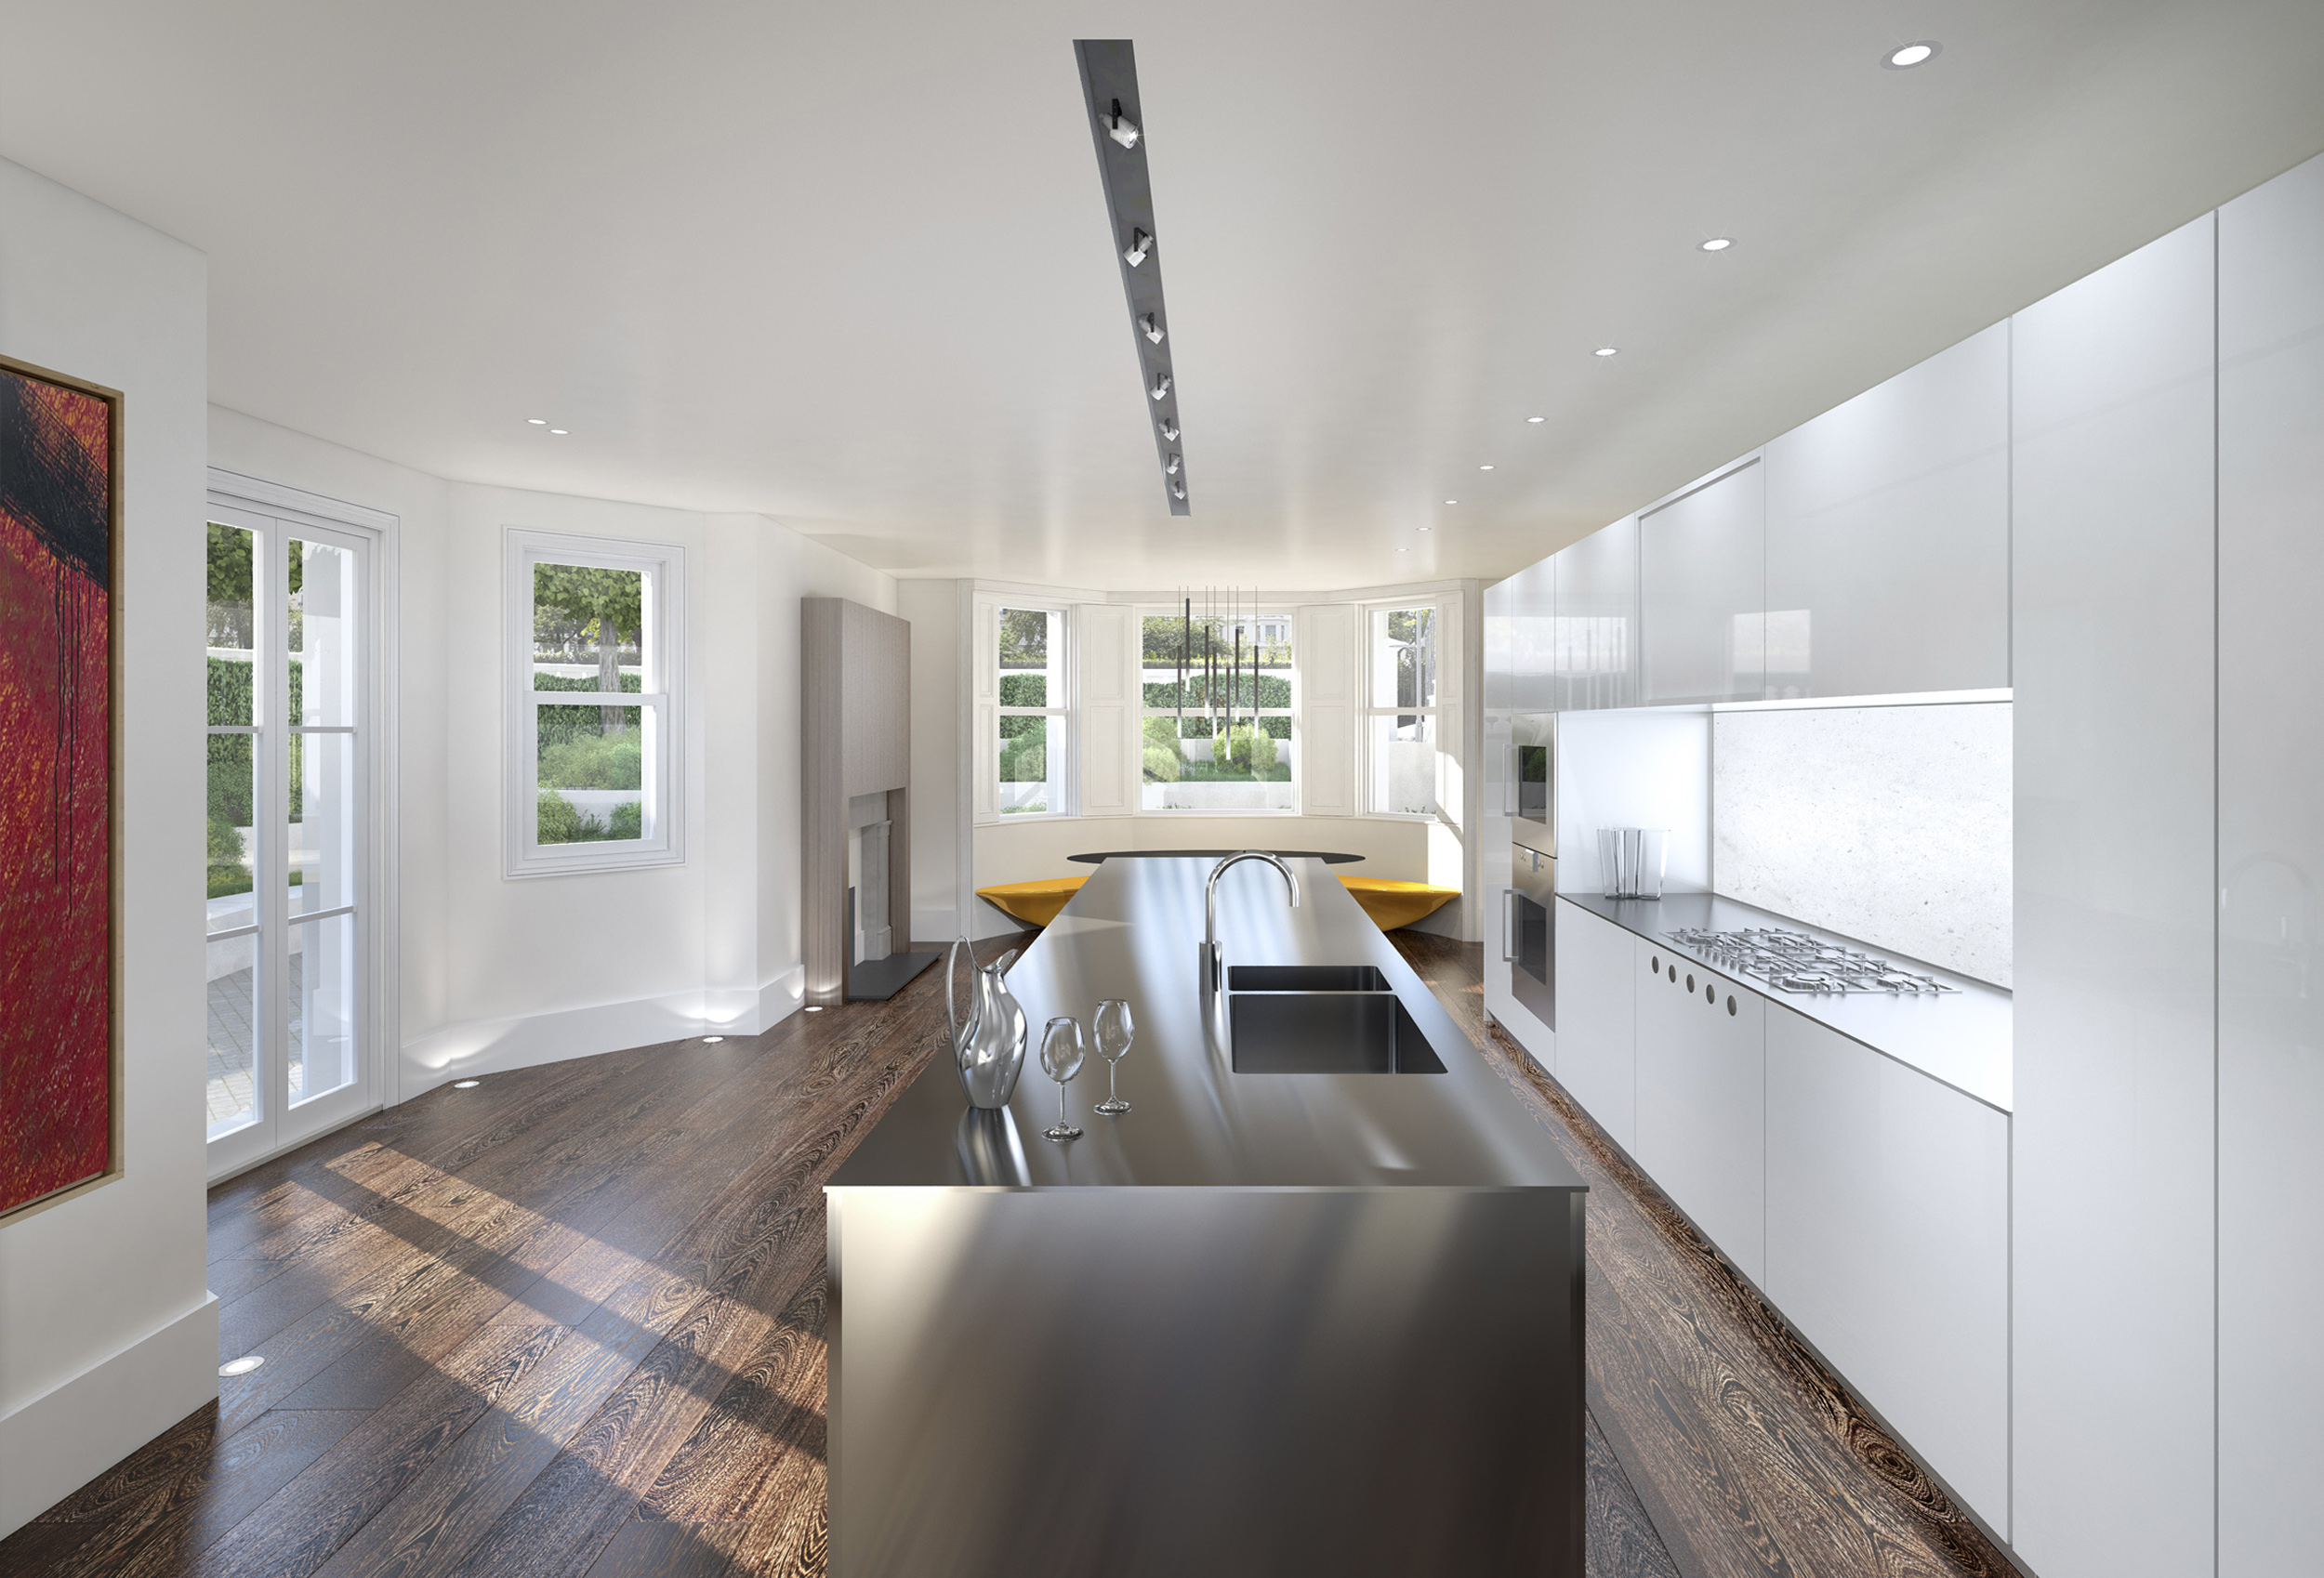 recent_spaces_hinh_kitchen_cgi.jpg